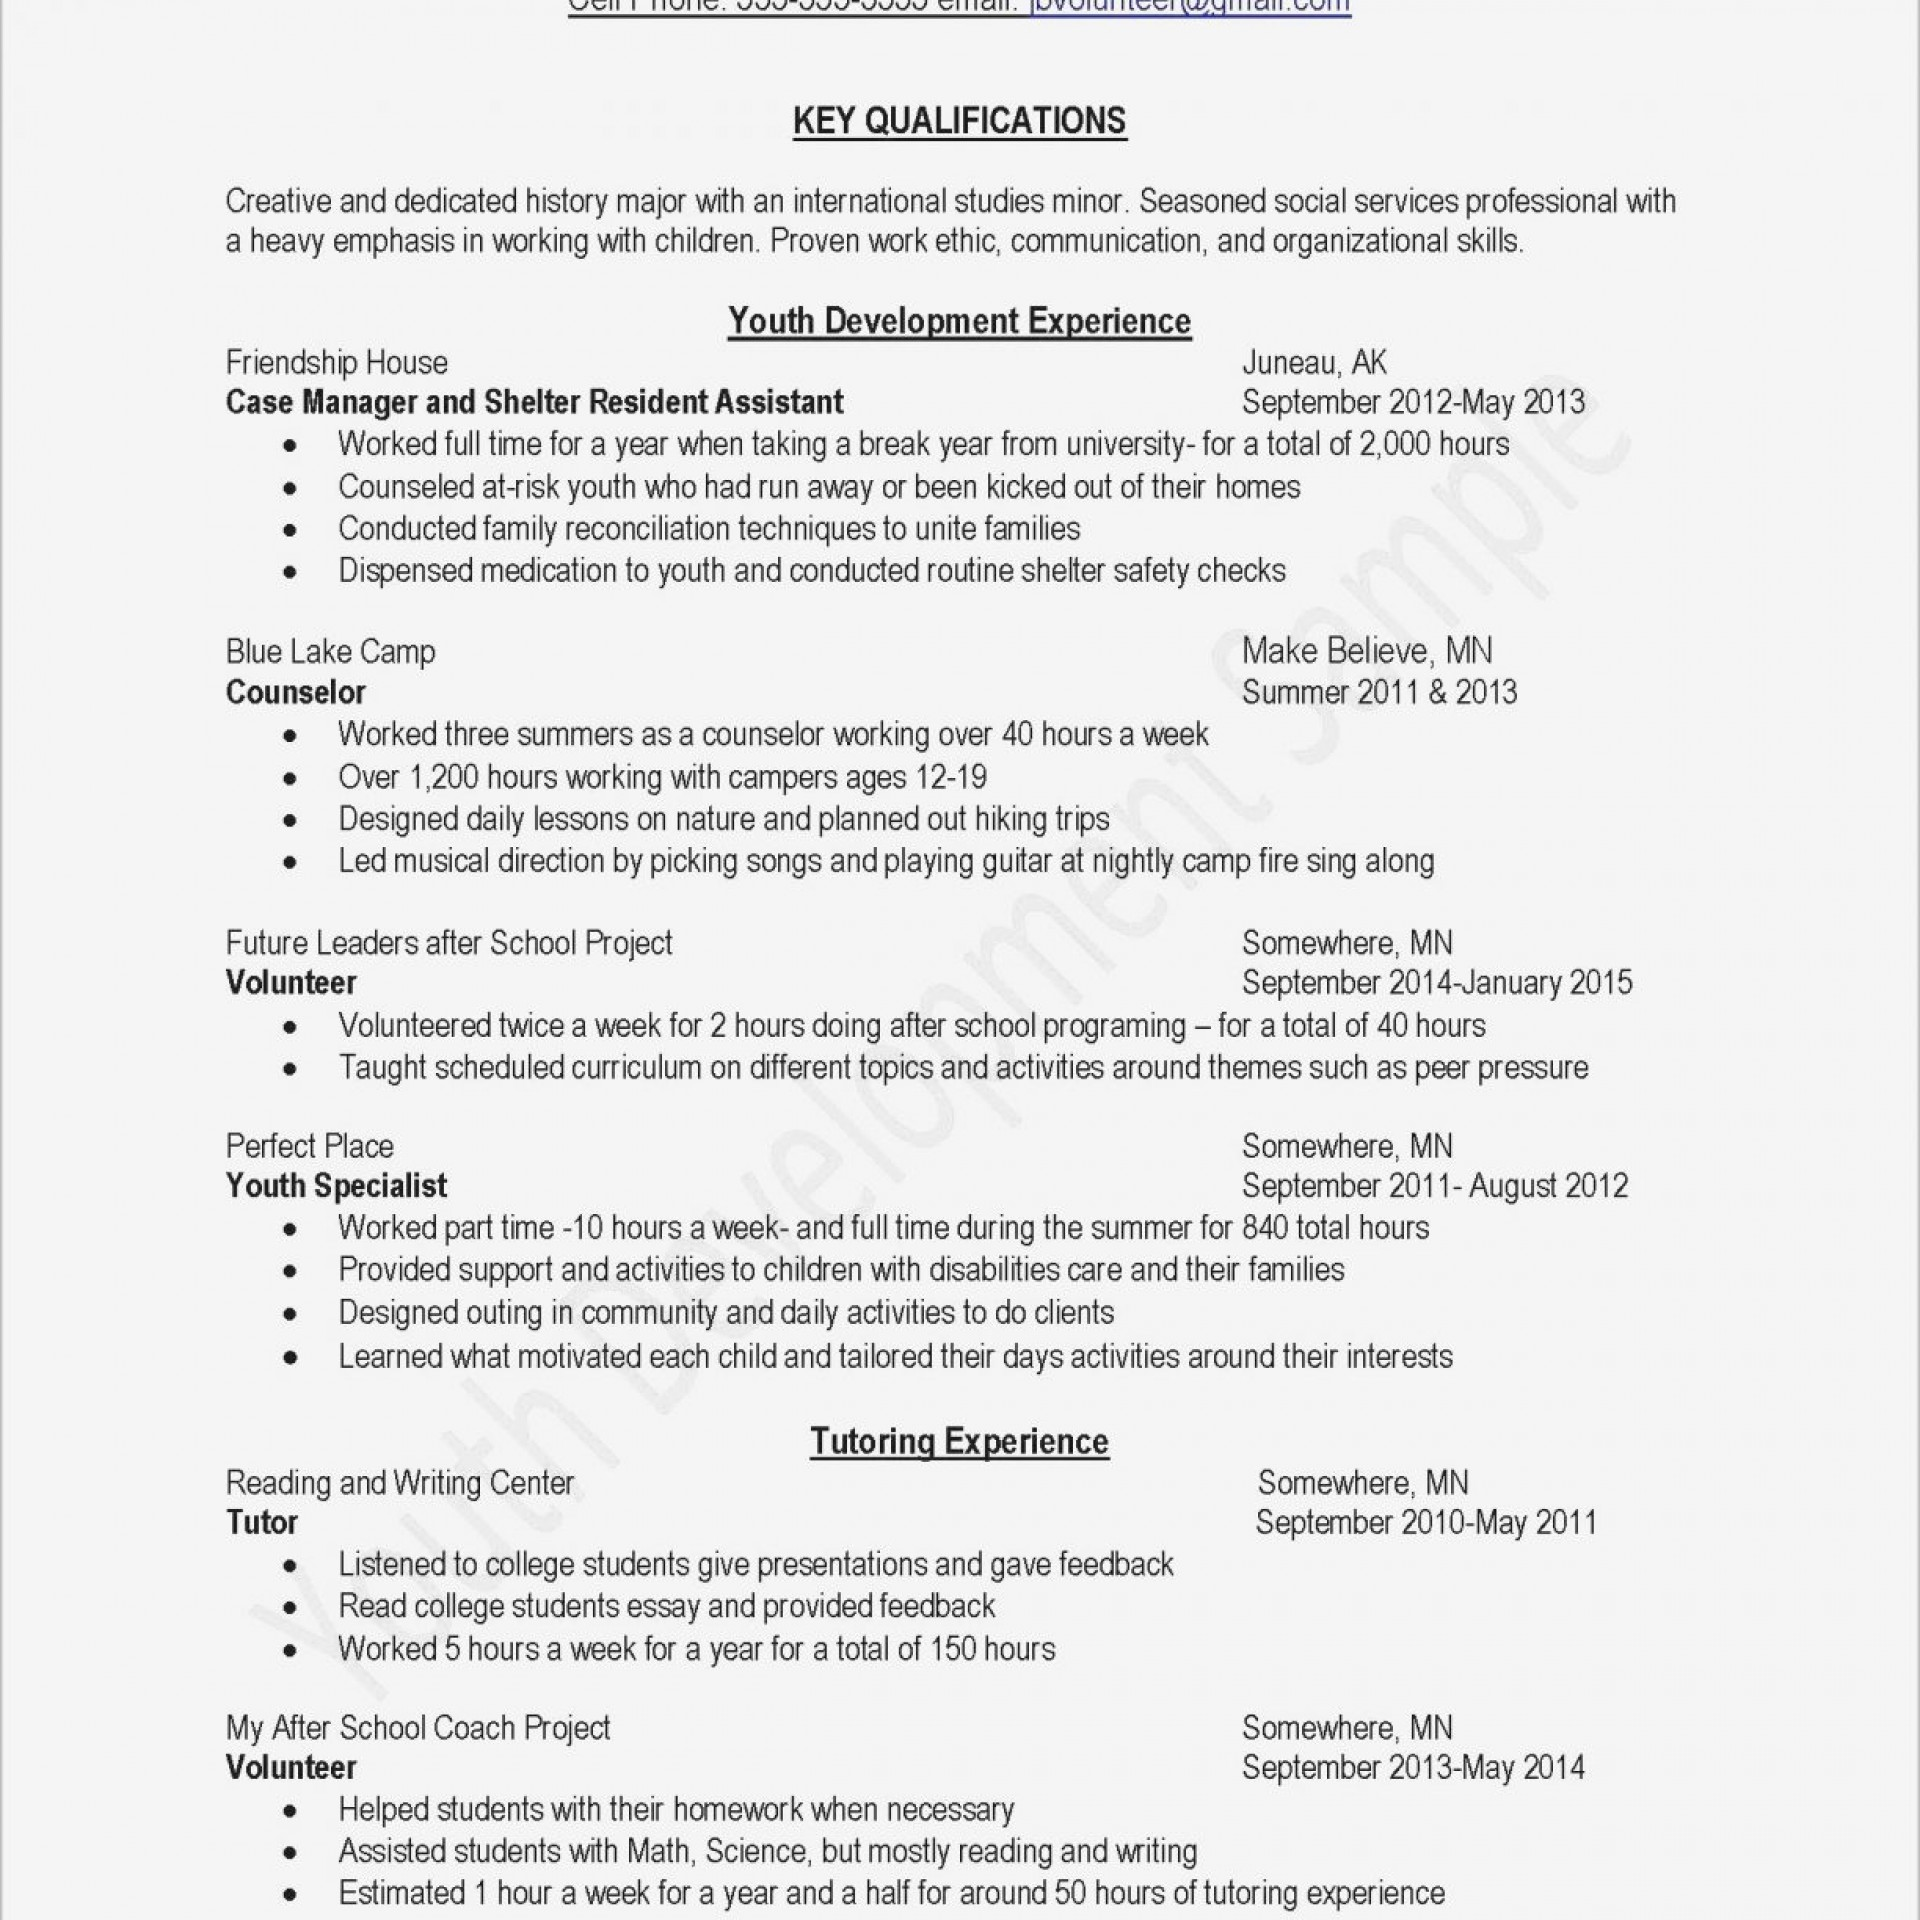 012 Free Resume Templates Pdf Download Samplesormat Or Doc Builder Easy 1224x1224 Essay Example Anarchism And Other Incredible Essays Emma Goldman Summary 1920